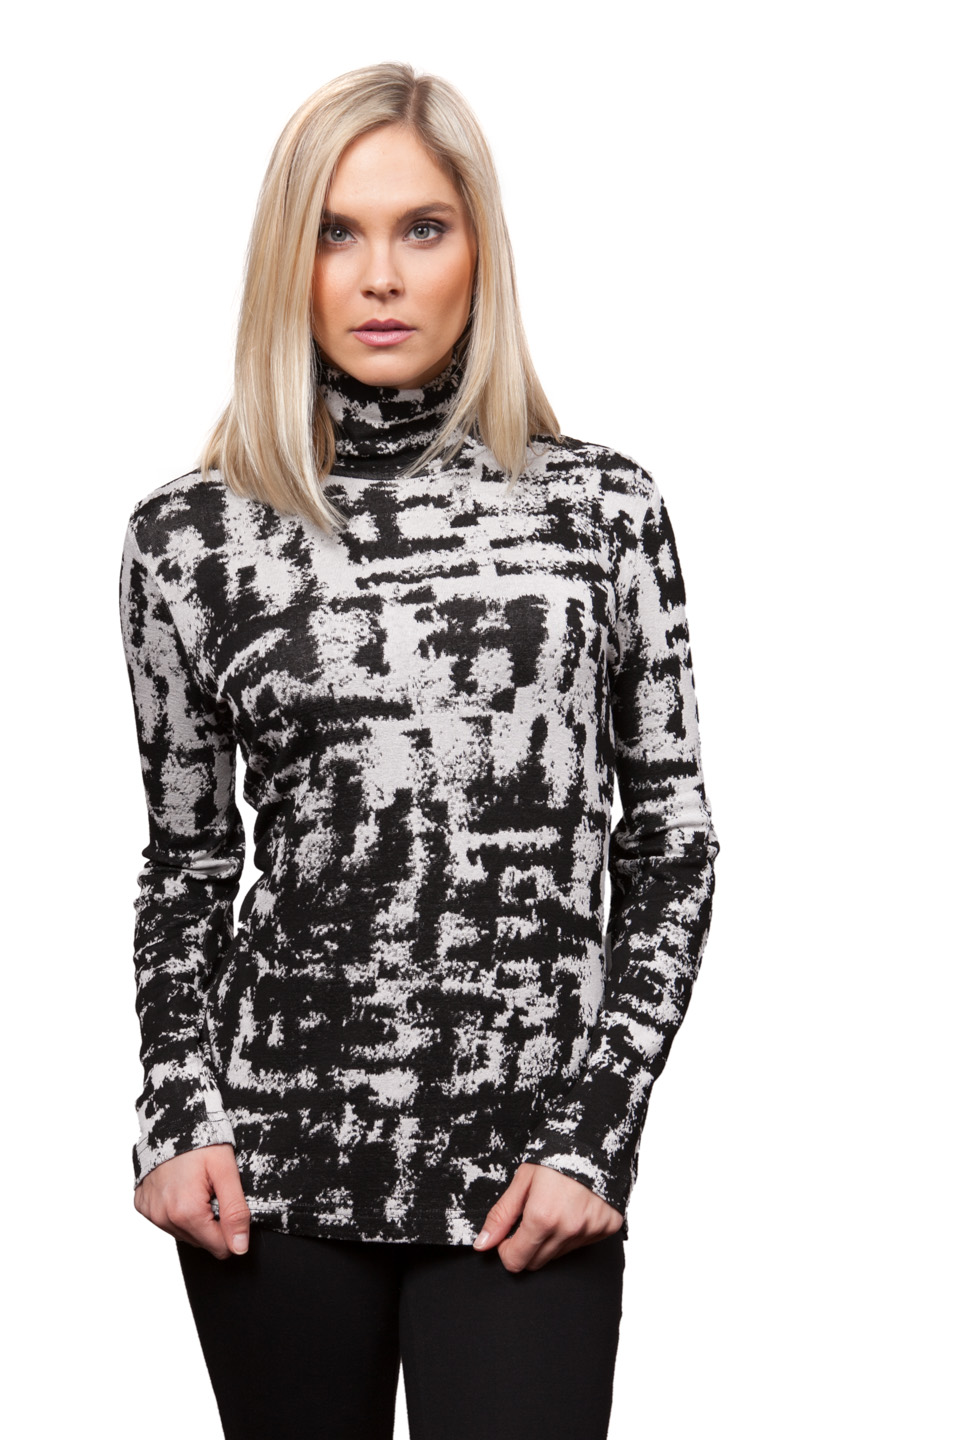 Copy of Style # 28933-16, p. 5<br>Fine Gauge Sweater Knit<br>Color: Black/White